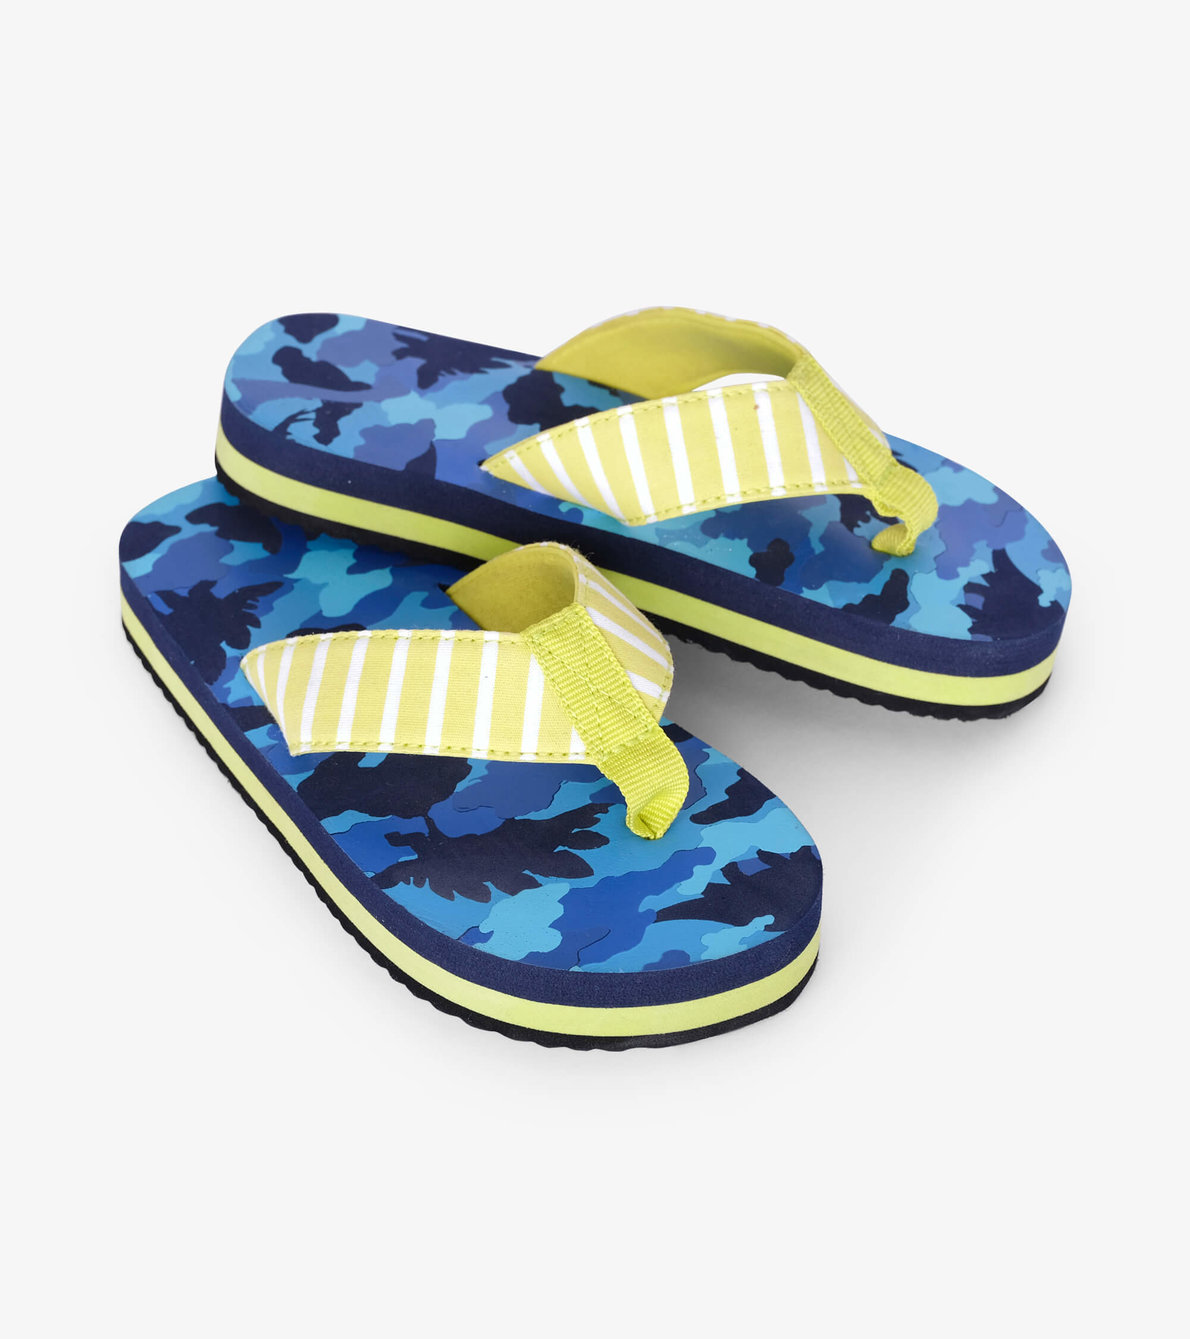 View larger image of Dino Camo Flip Flops